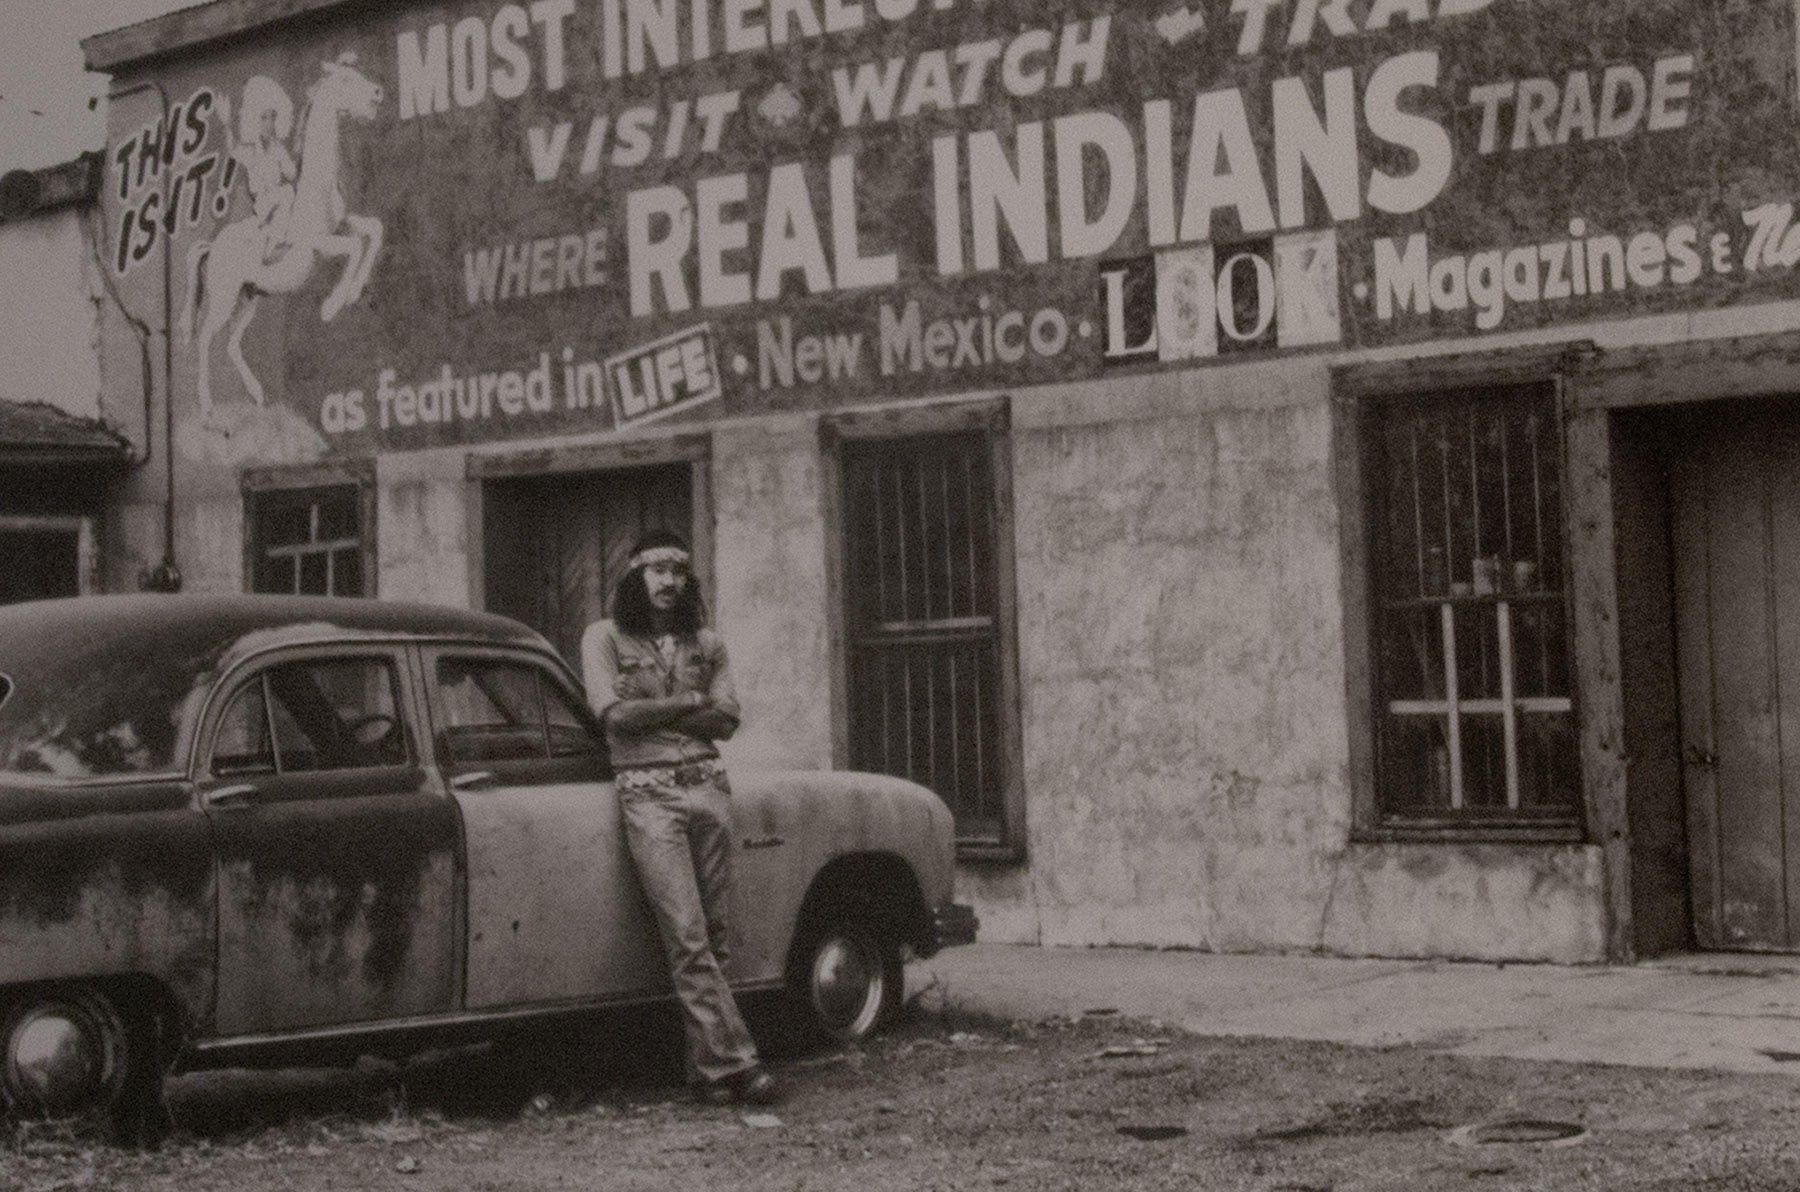 REAL INDIANS, platinum photograph detail